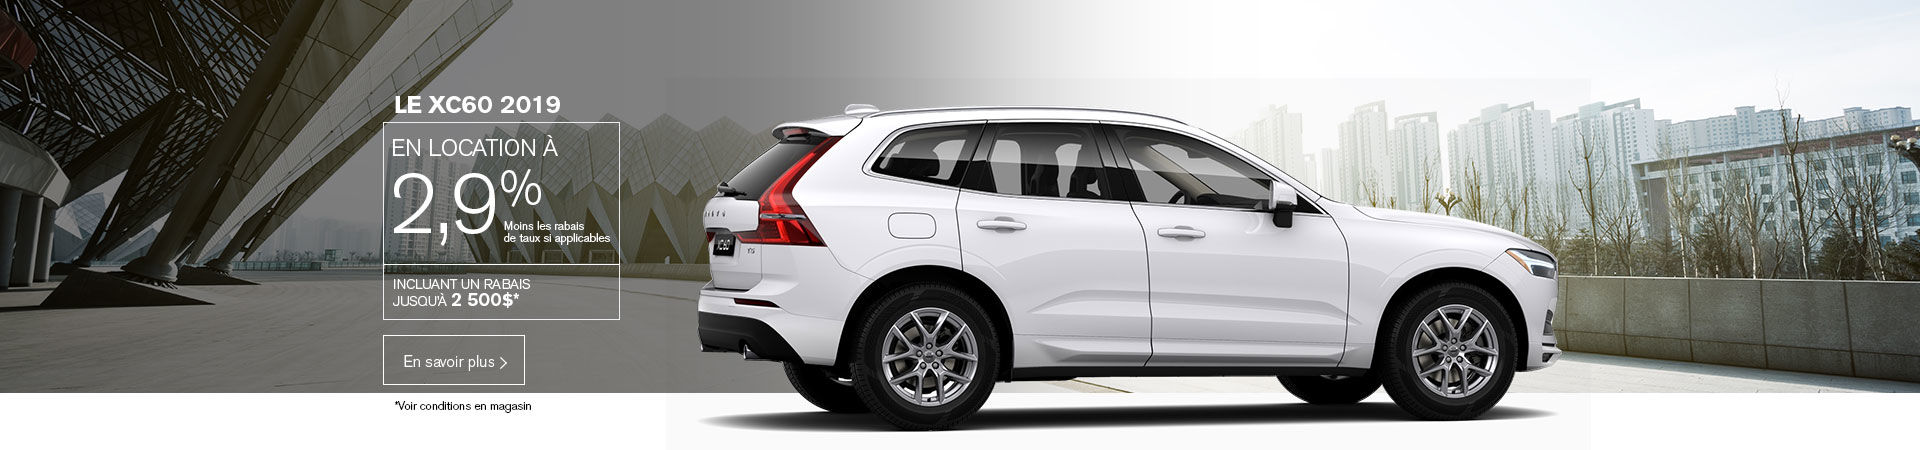 evenement signature volvo xc60